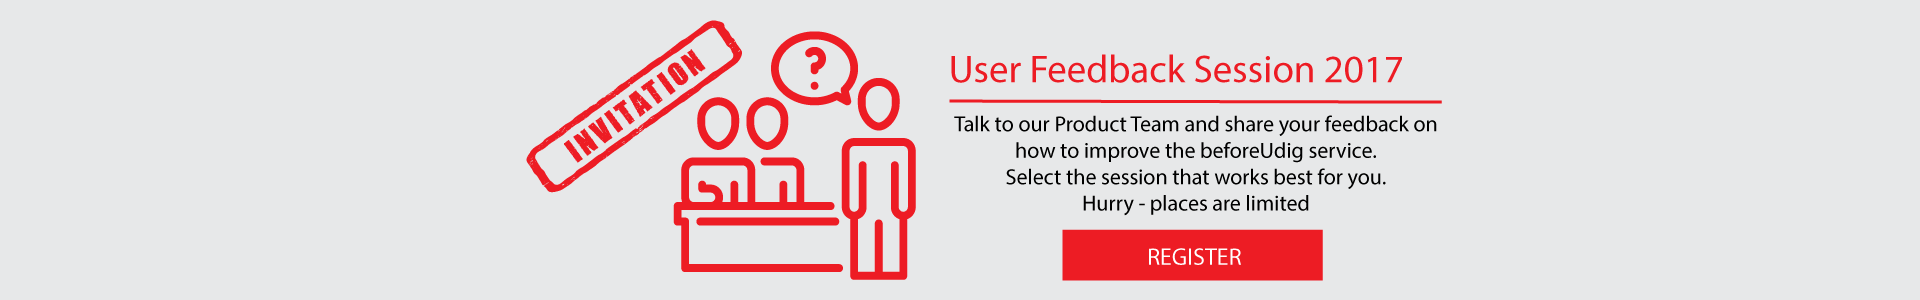 User feedback session